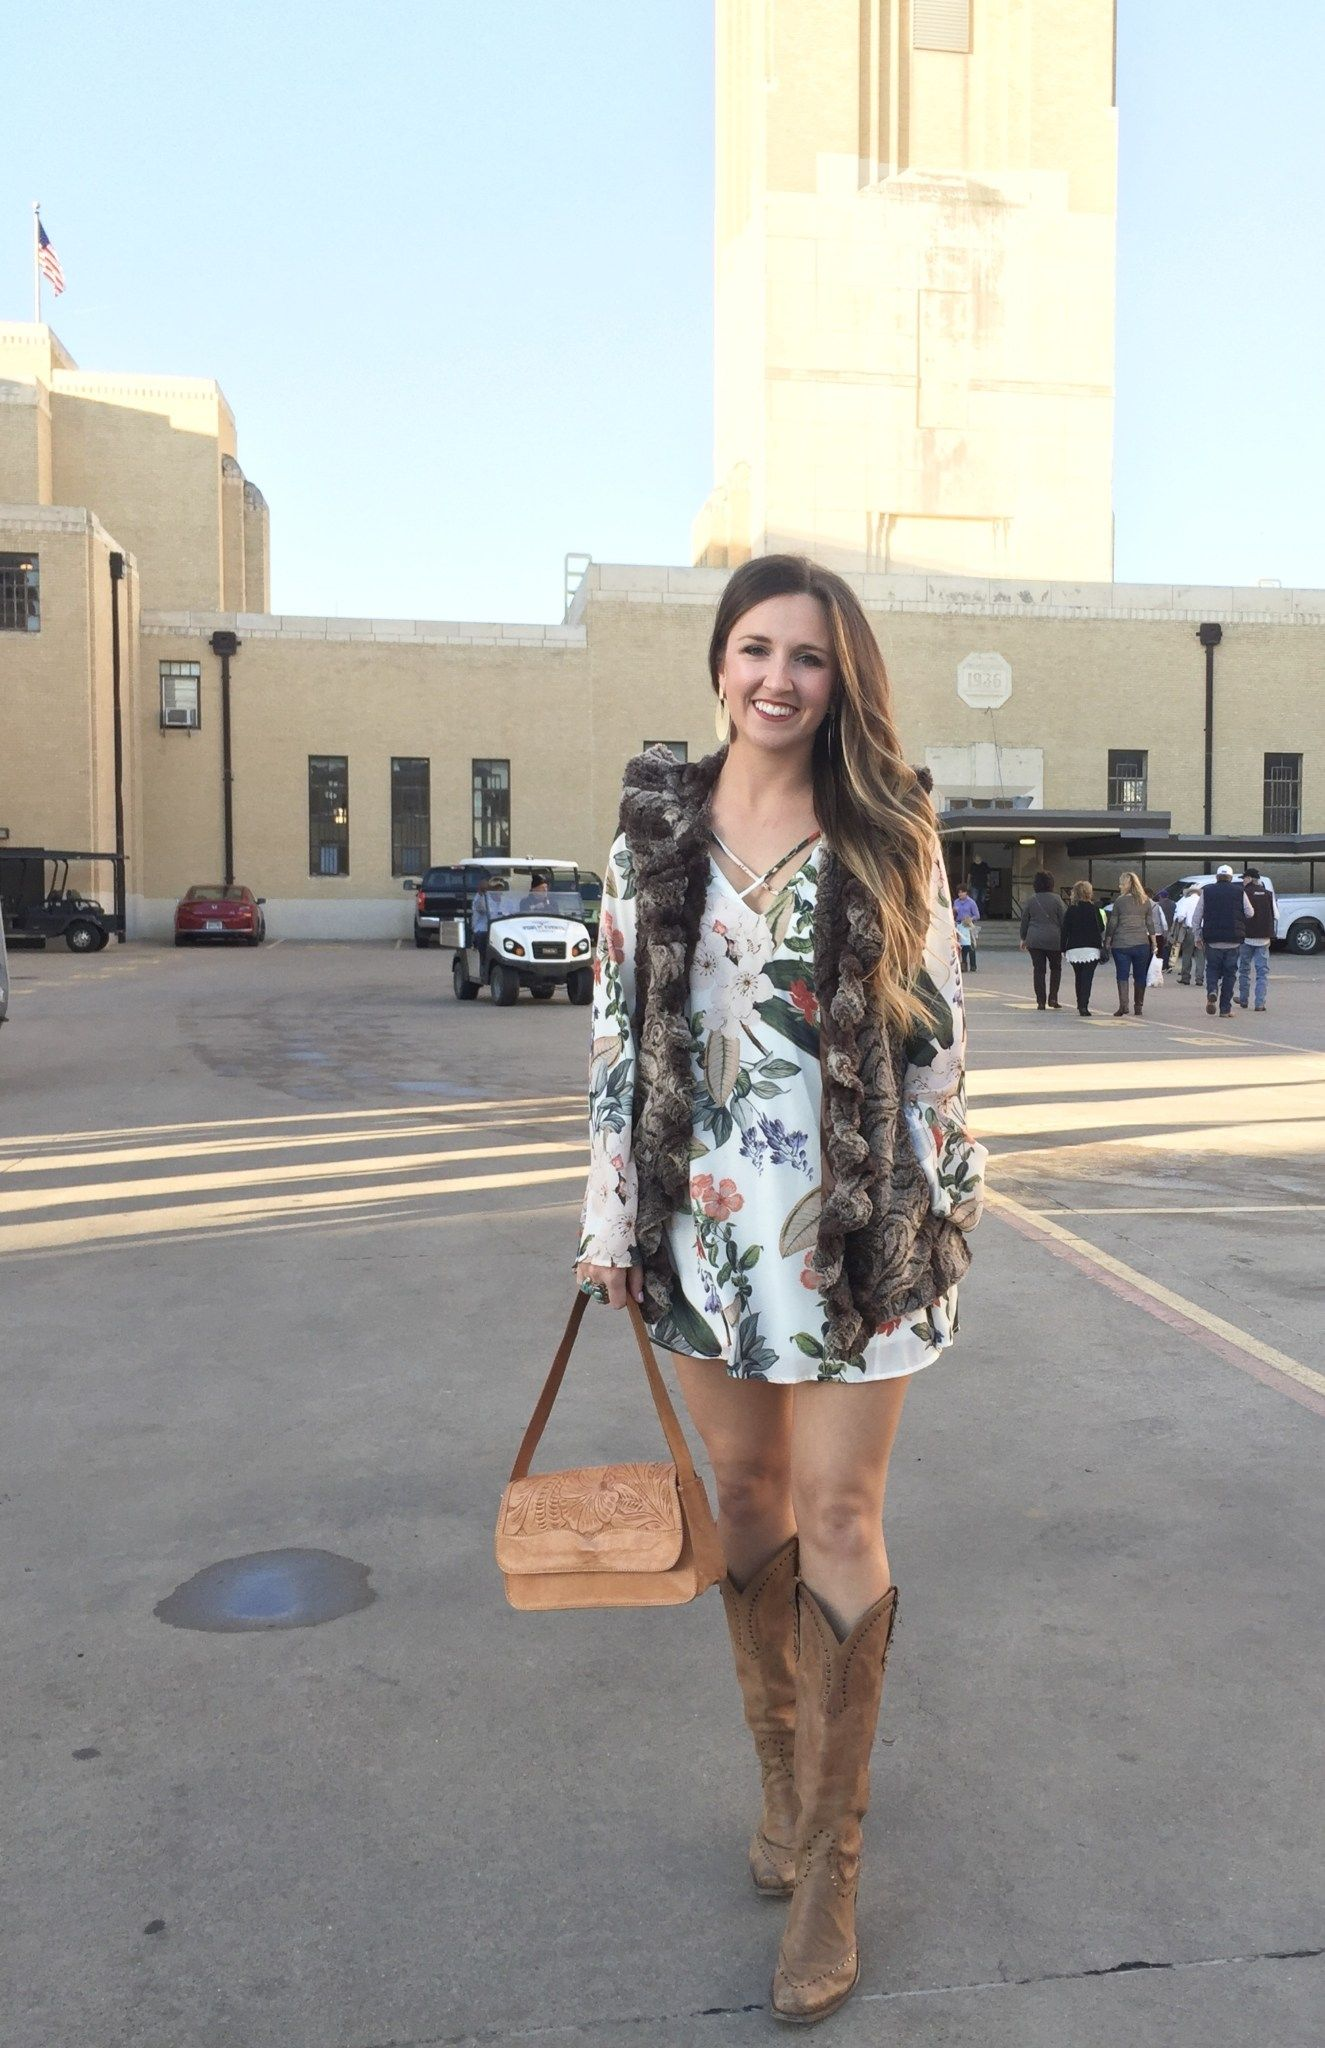 dae0ccc09f3b Cute Outfit Ideas for Rodeo Season – Cait and Co. Blog. Houston Rodeo